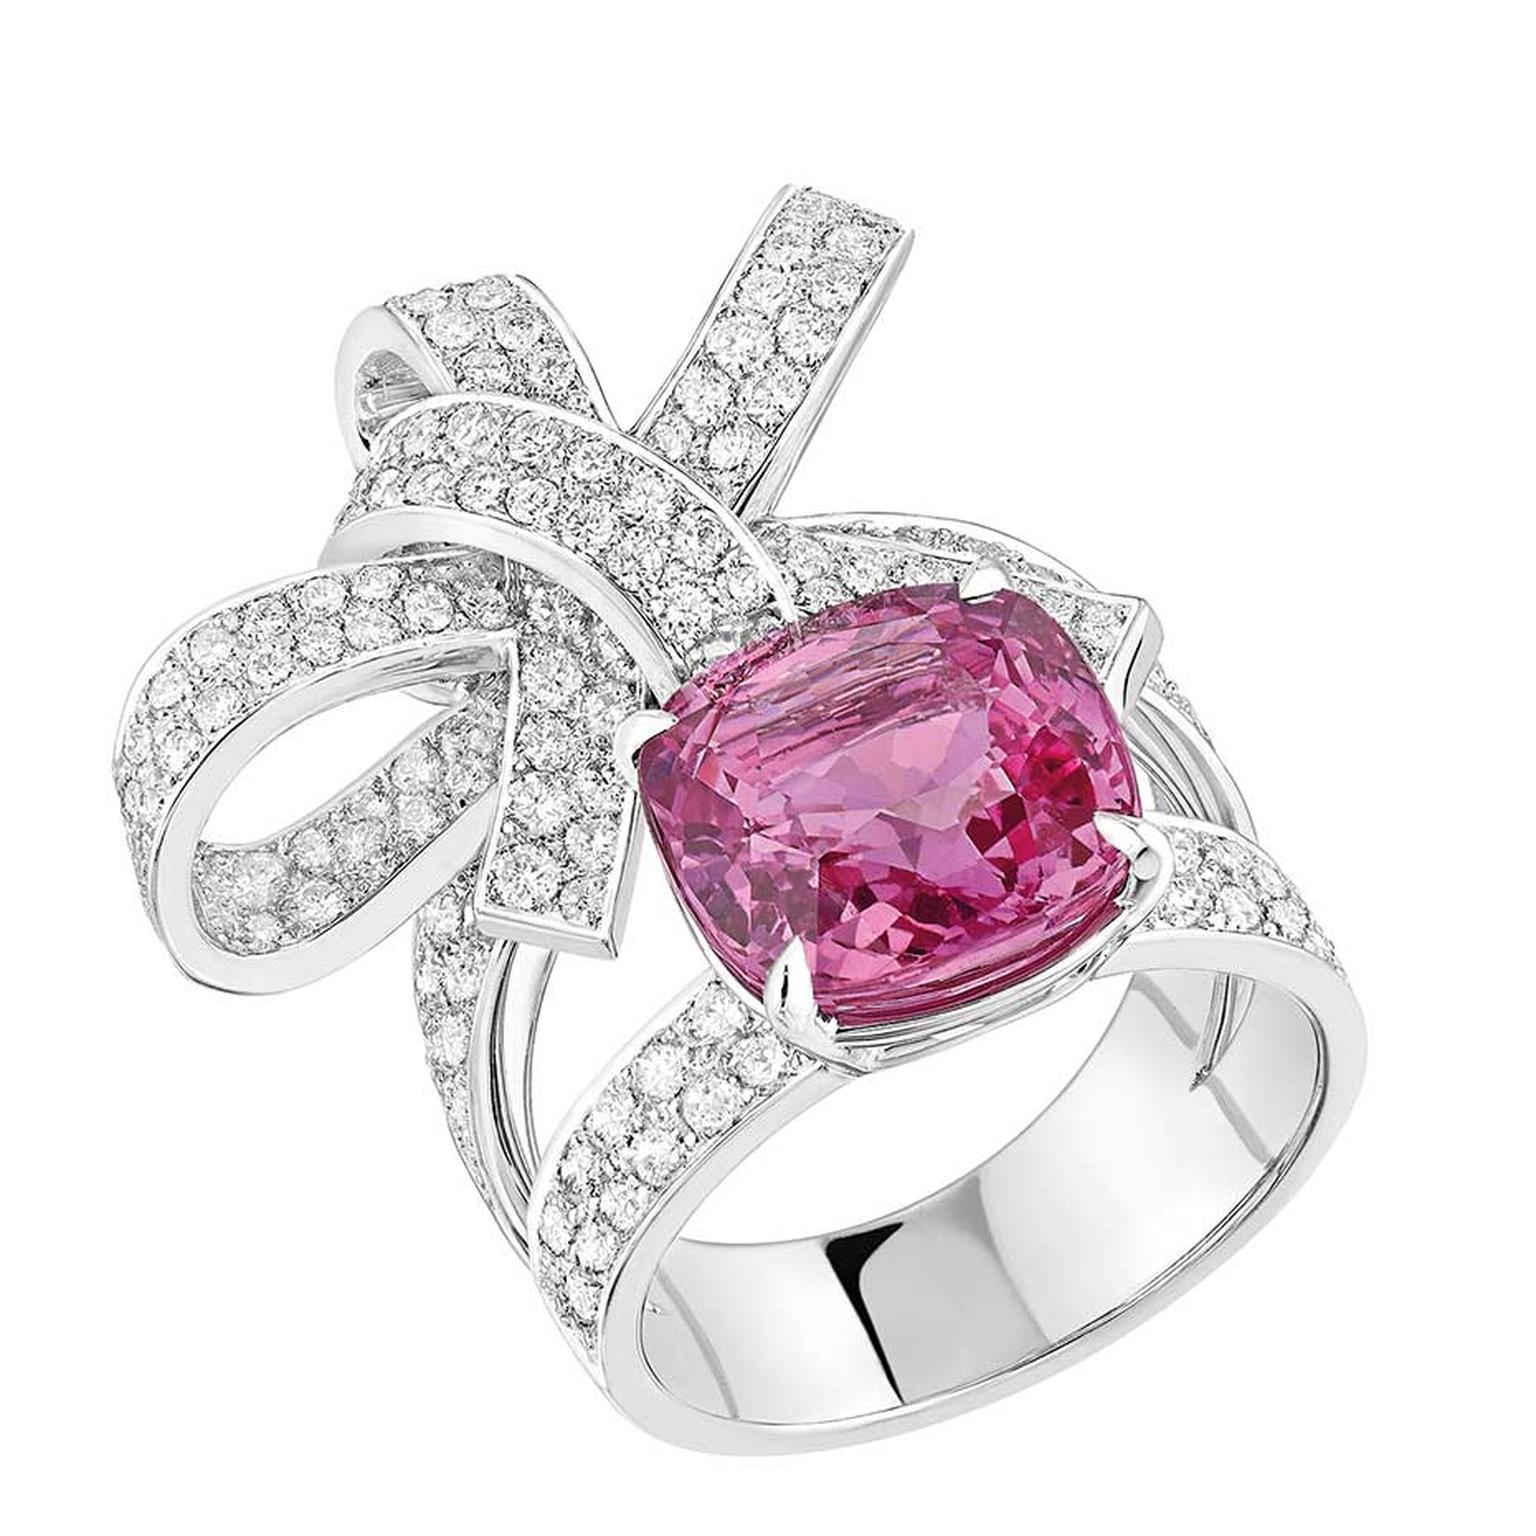 Chanel Ruban high jewellery ring